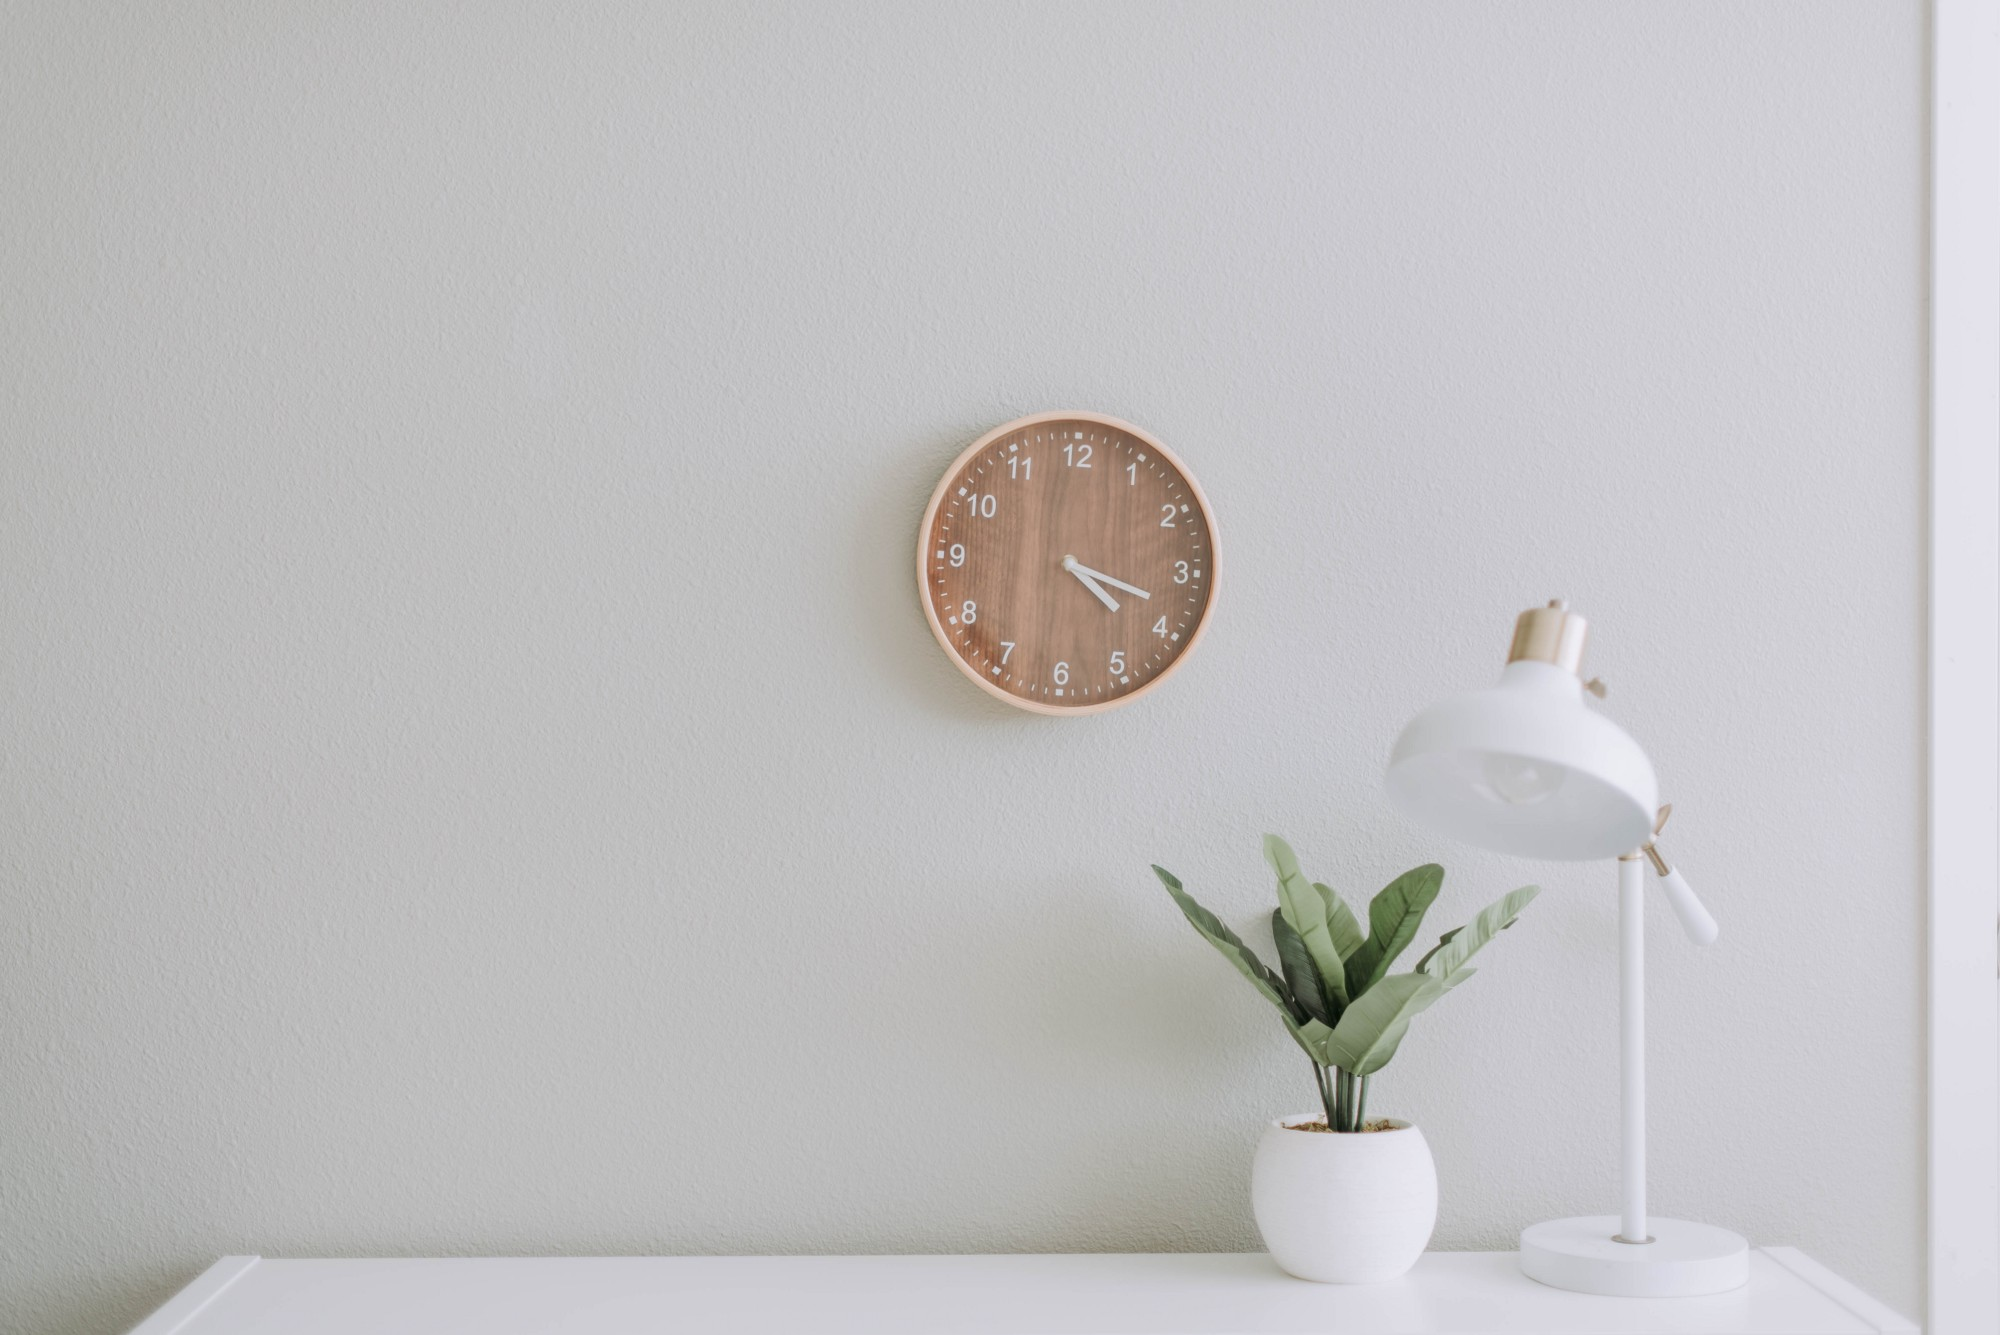 Wooden wall clock over a white desk and plant.